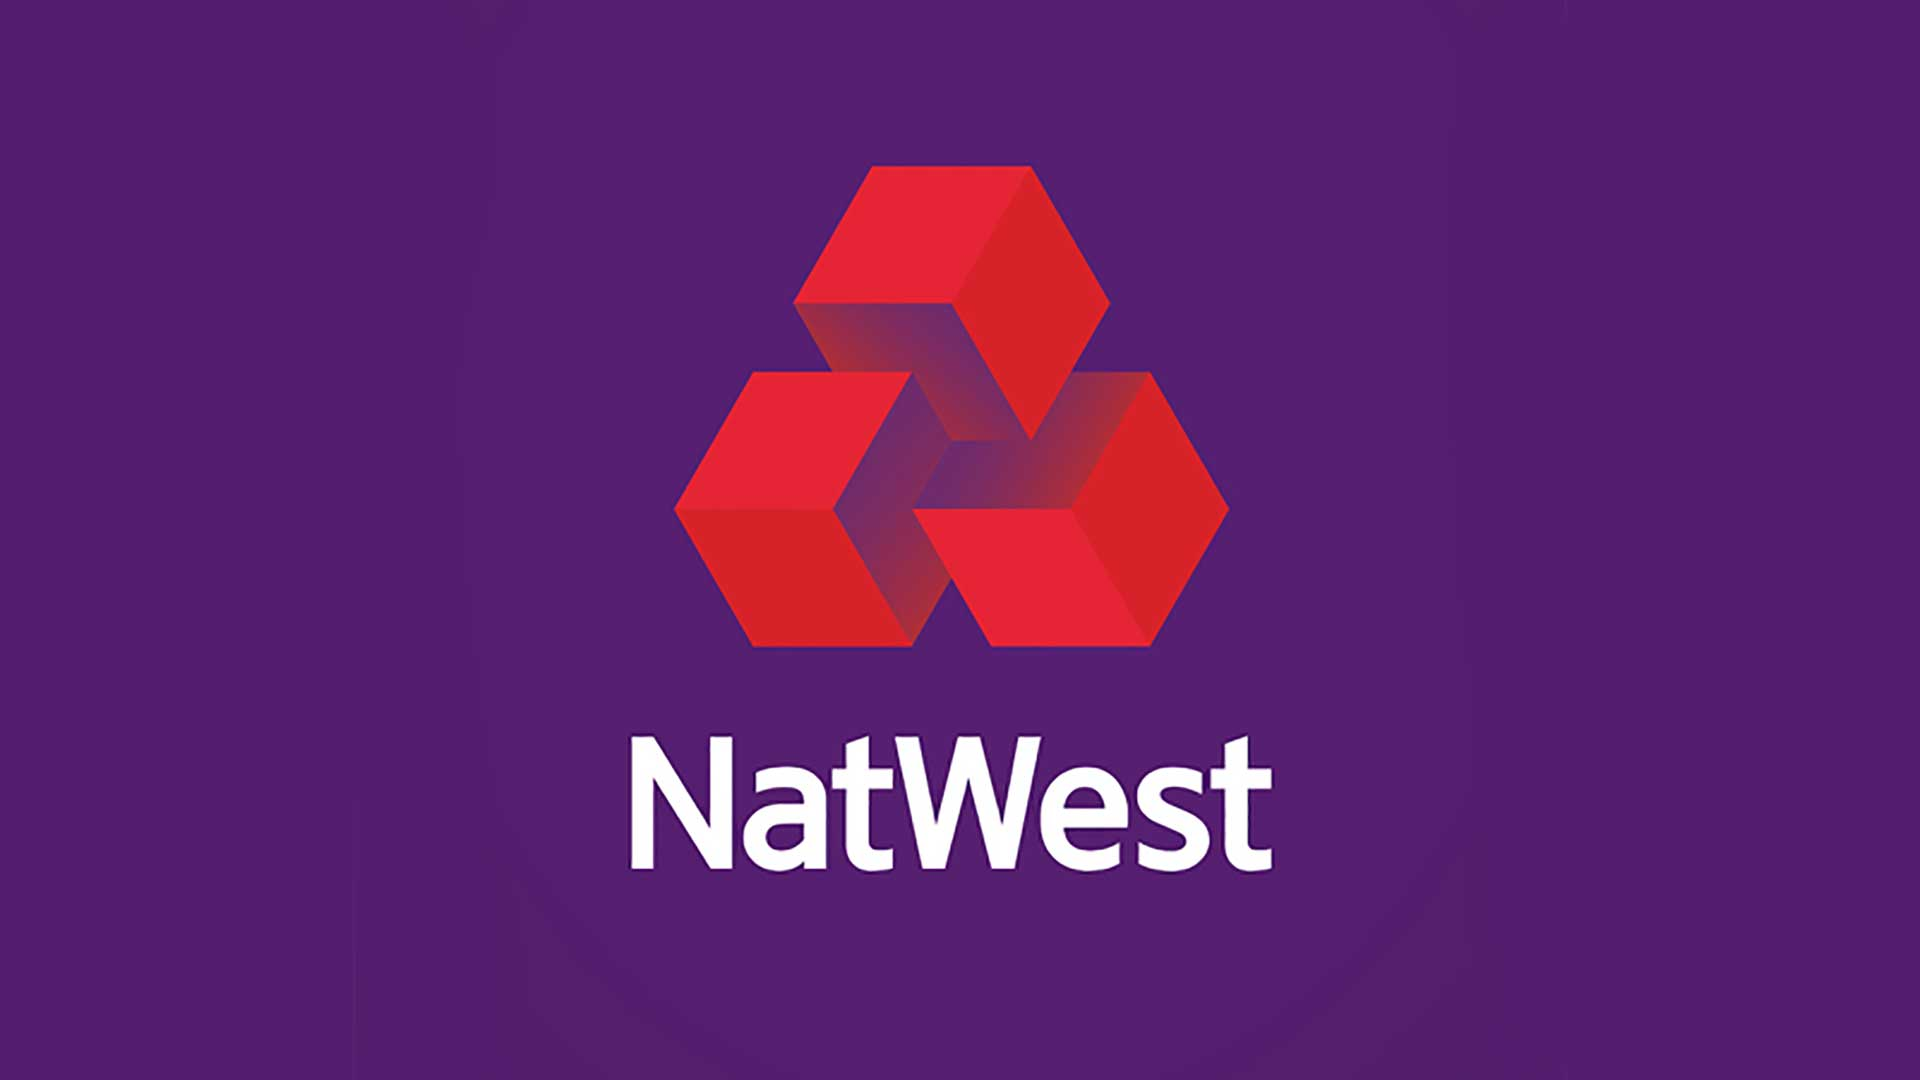 Am I Bovvered? Motivation and Flow at Natwest